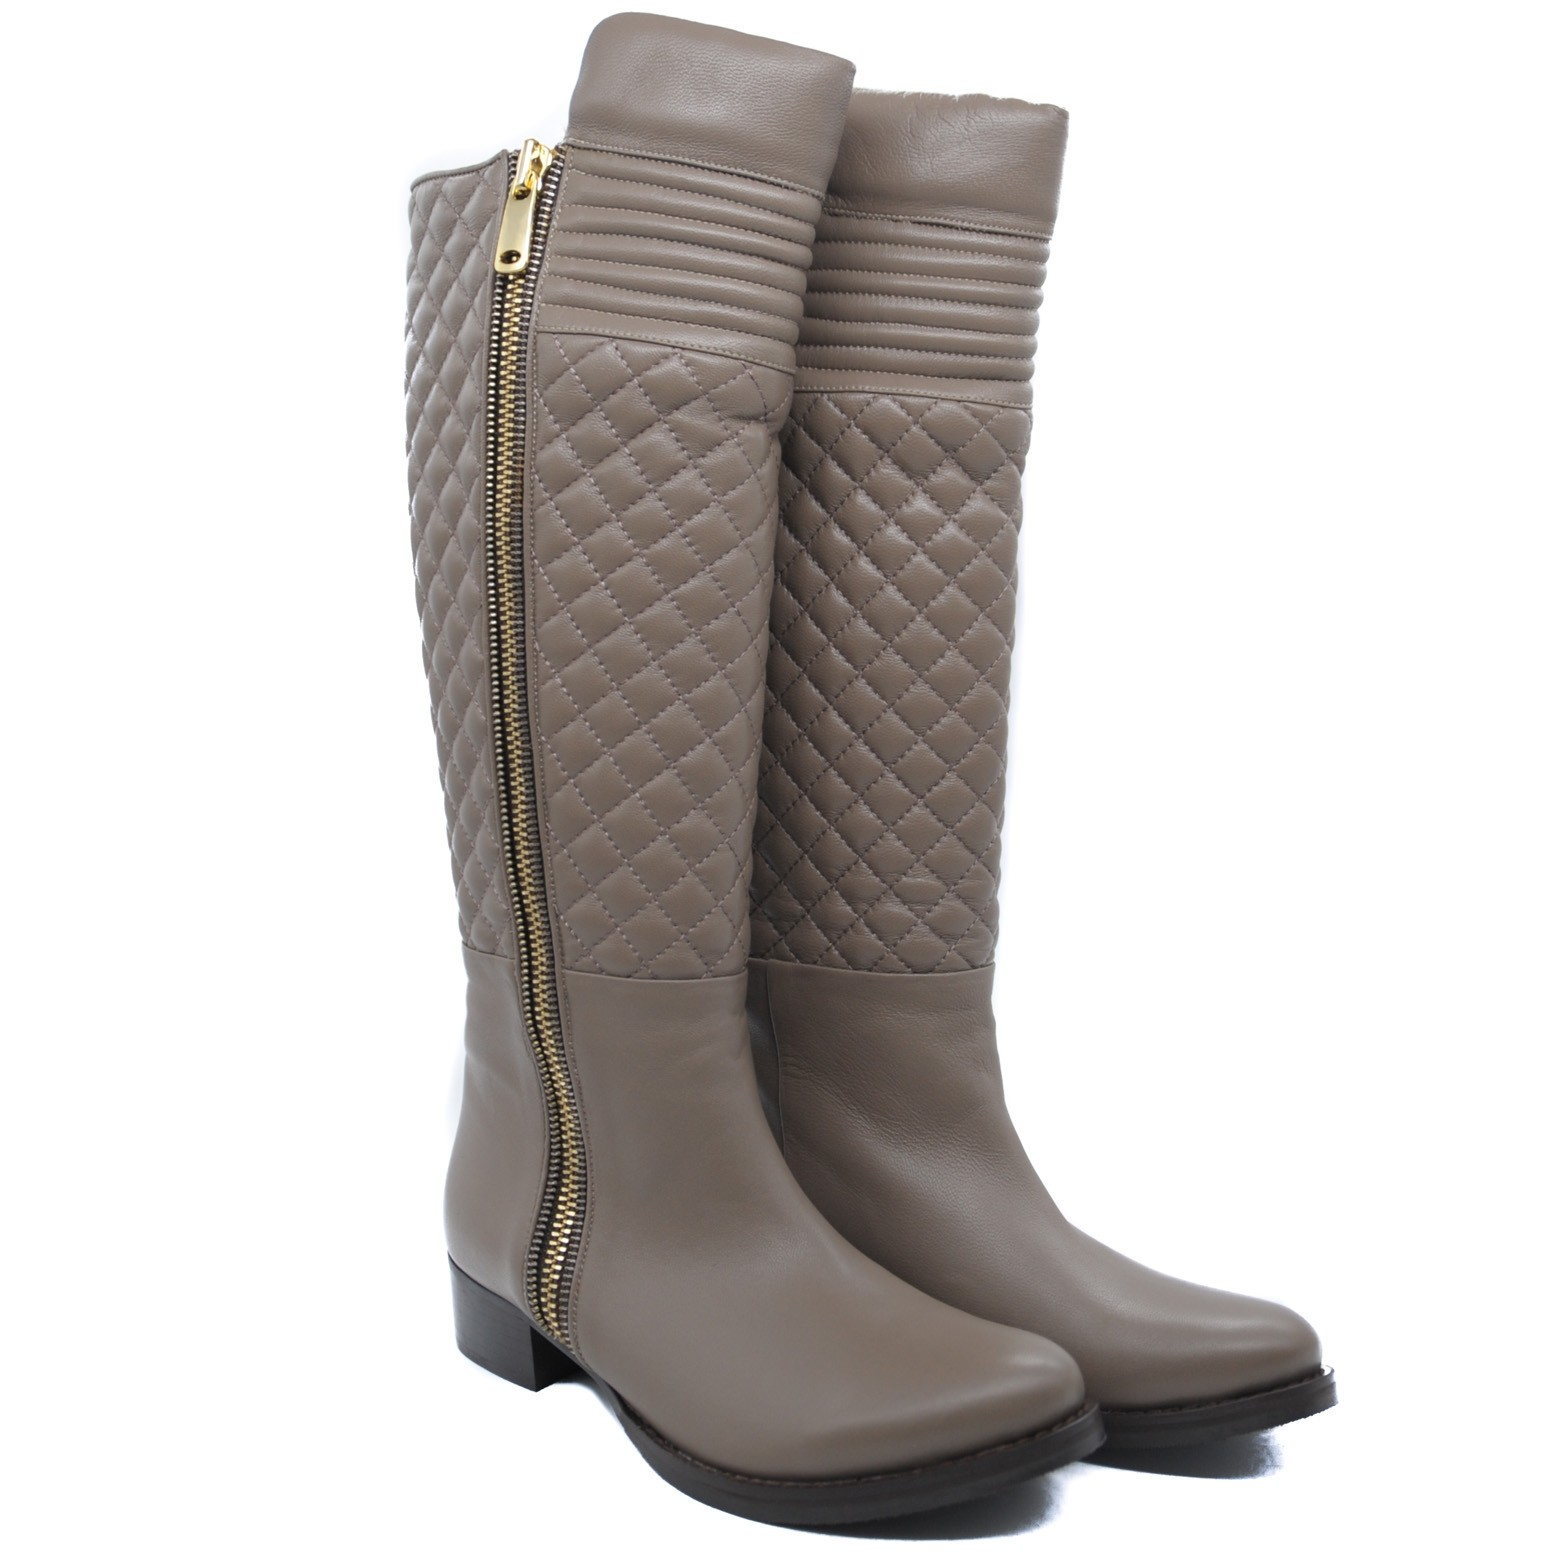 Beautifully Designed Quited Leather Knee Length Boots with Full Length Side Zip